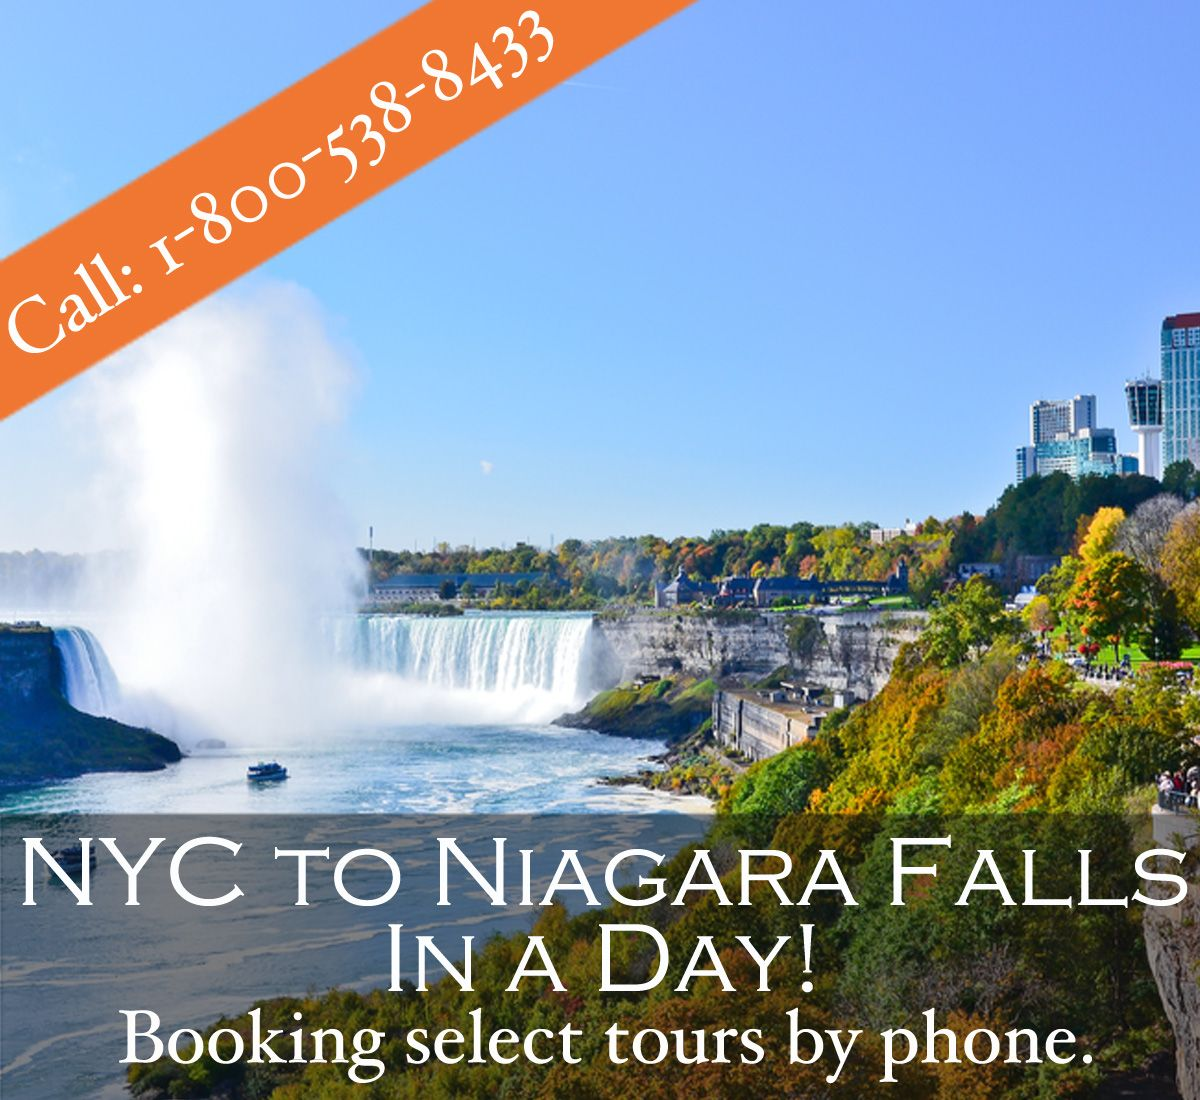 niagara falls bus tours from nyc